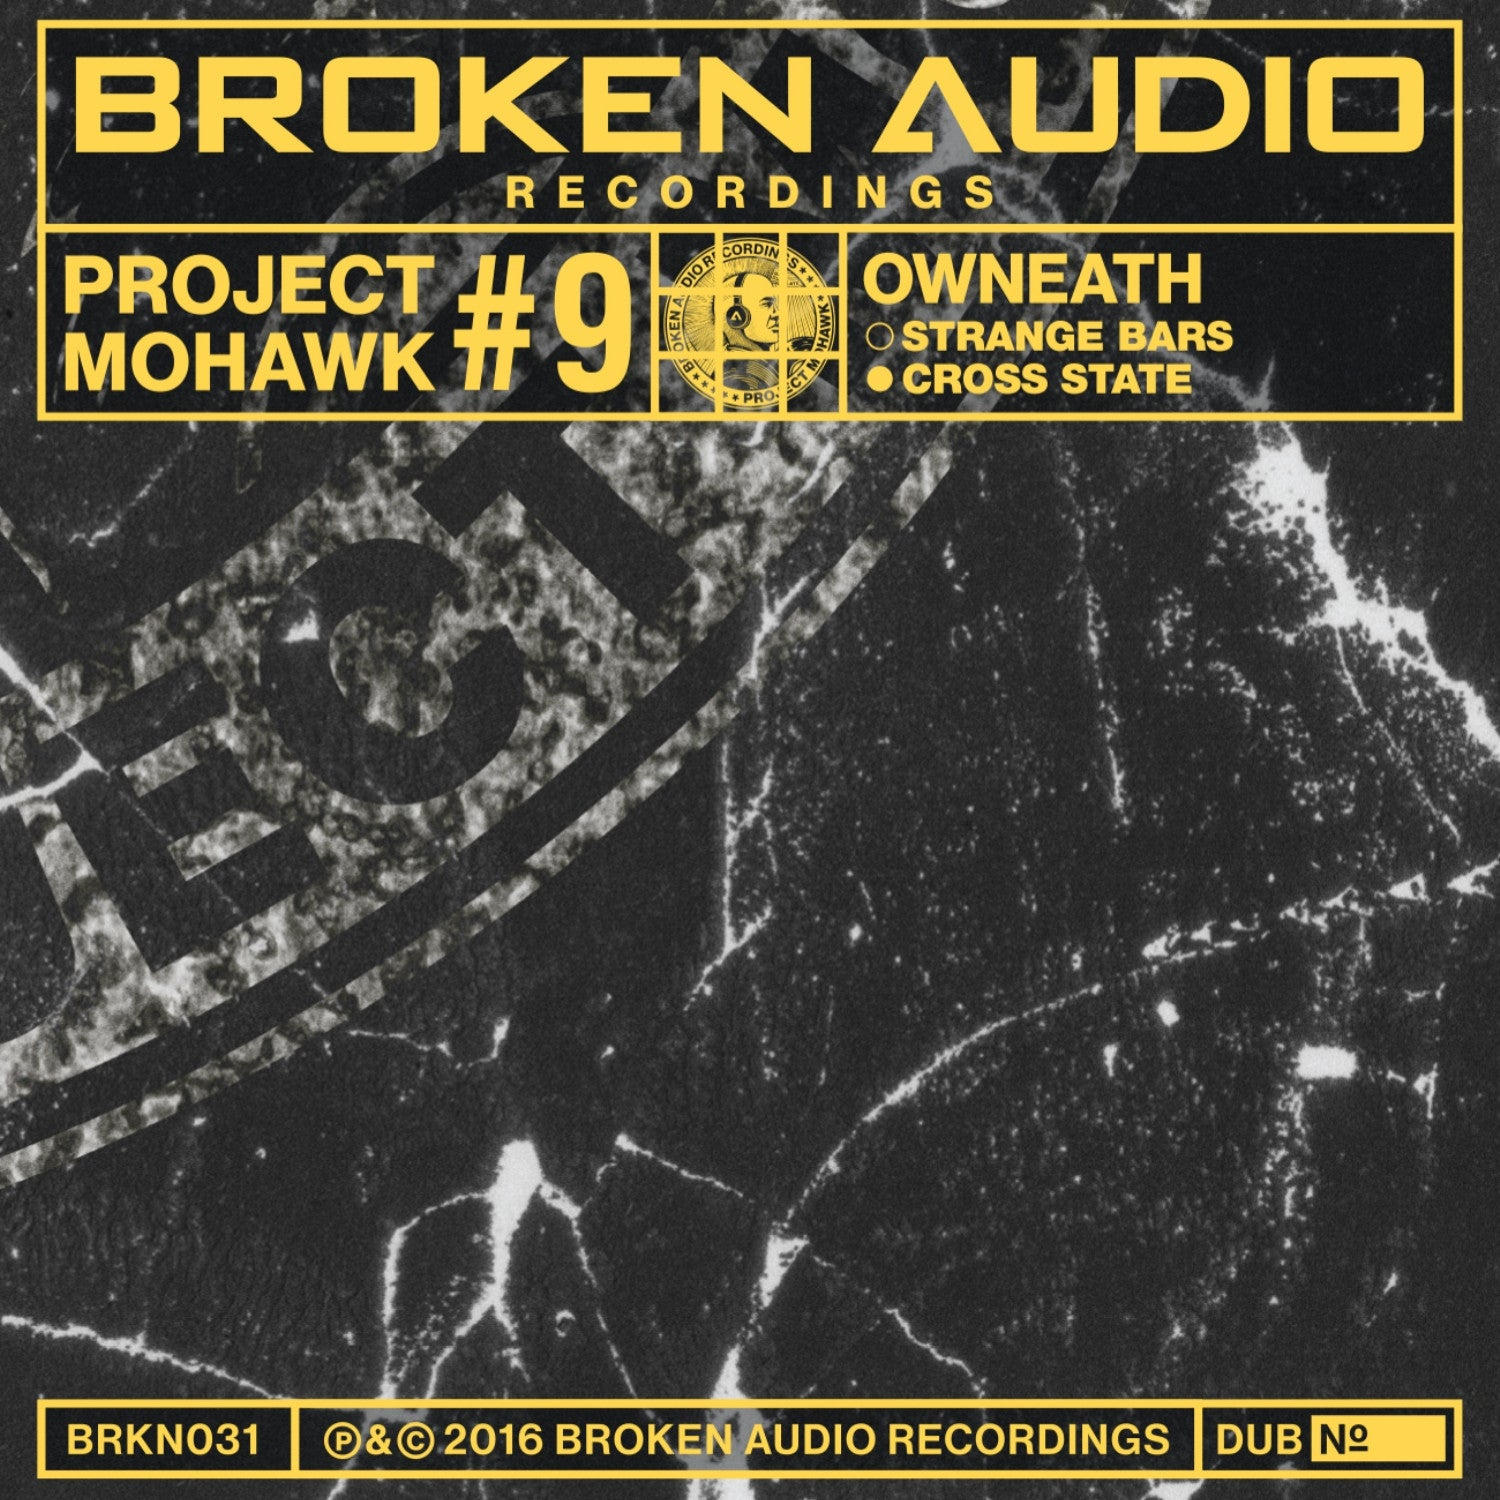 "Project Mohawk #9 10"" Dubs , Vinyl - Broken Audio Recordings, Unearthed Sounds"